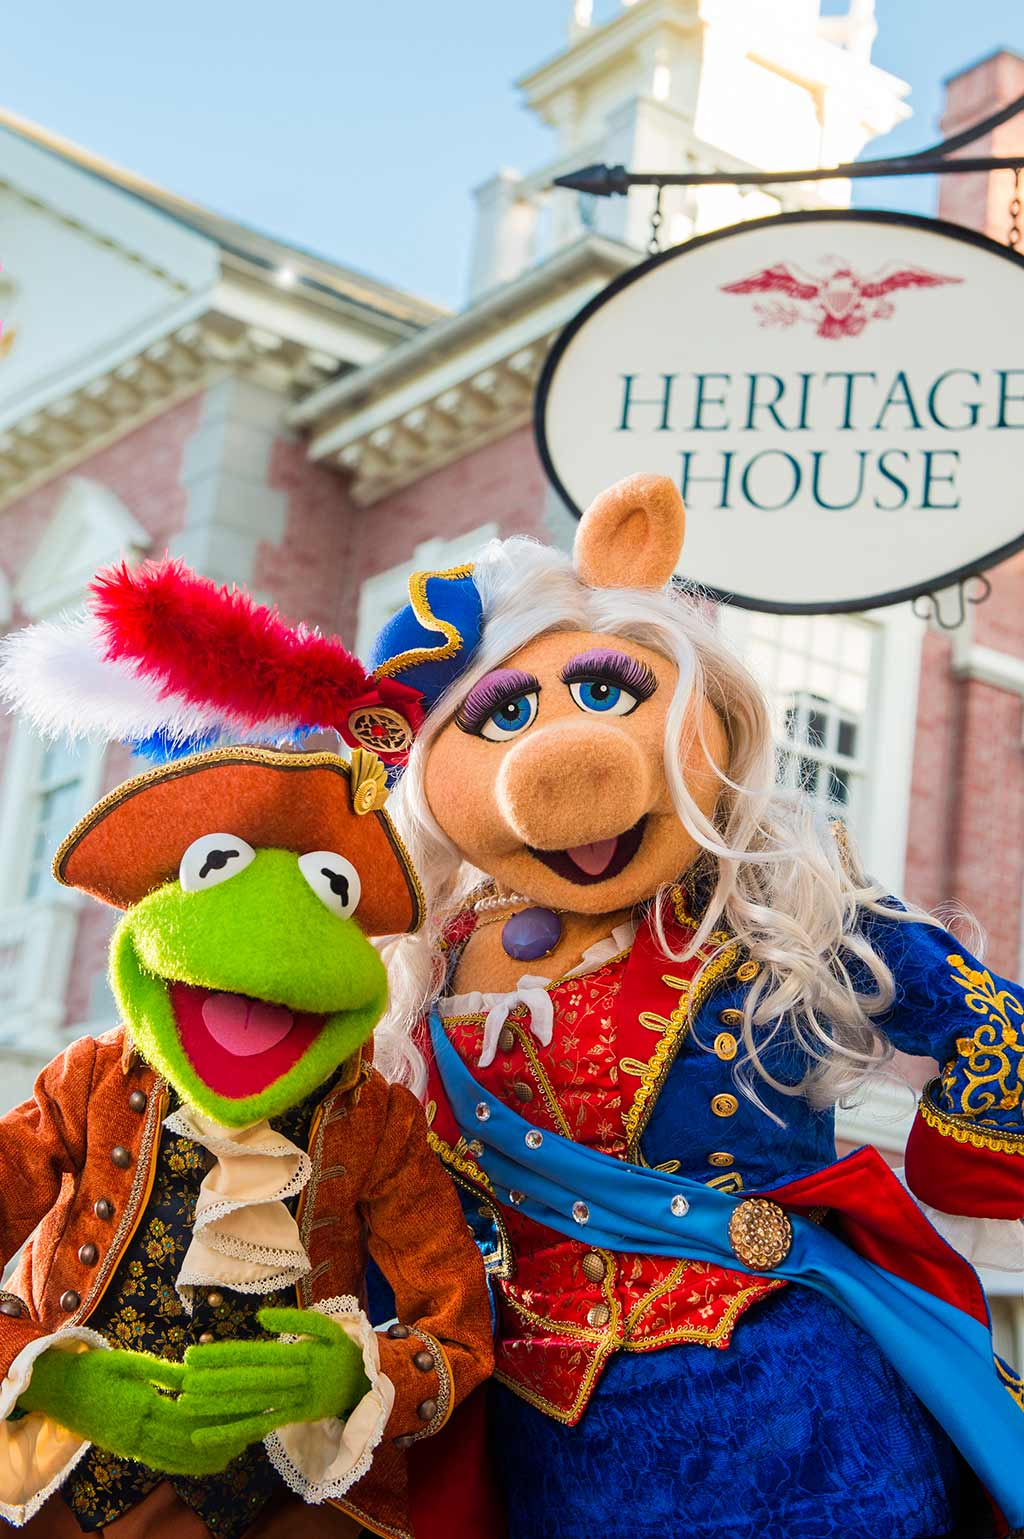 Kermit and Miss Piggy in front of Heritage House